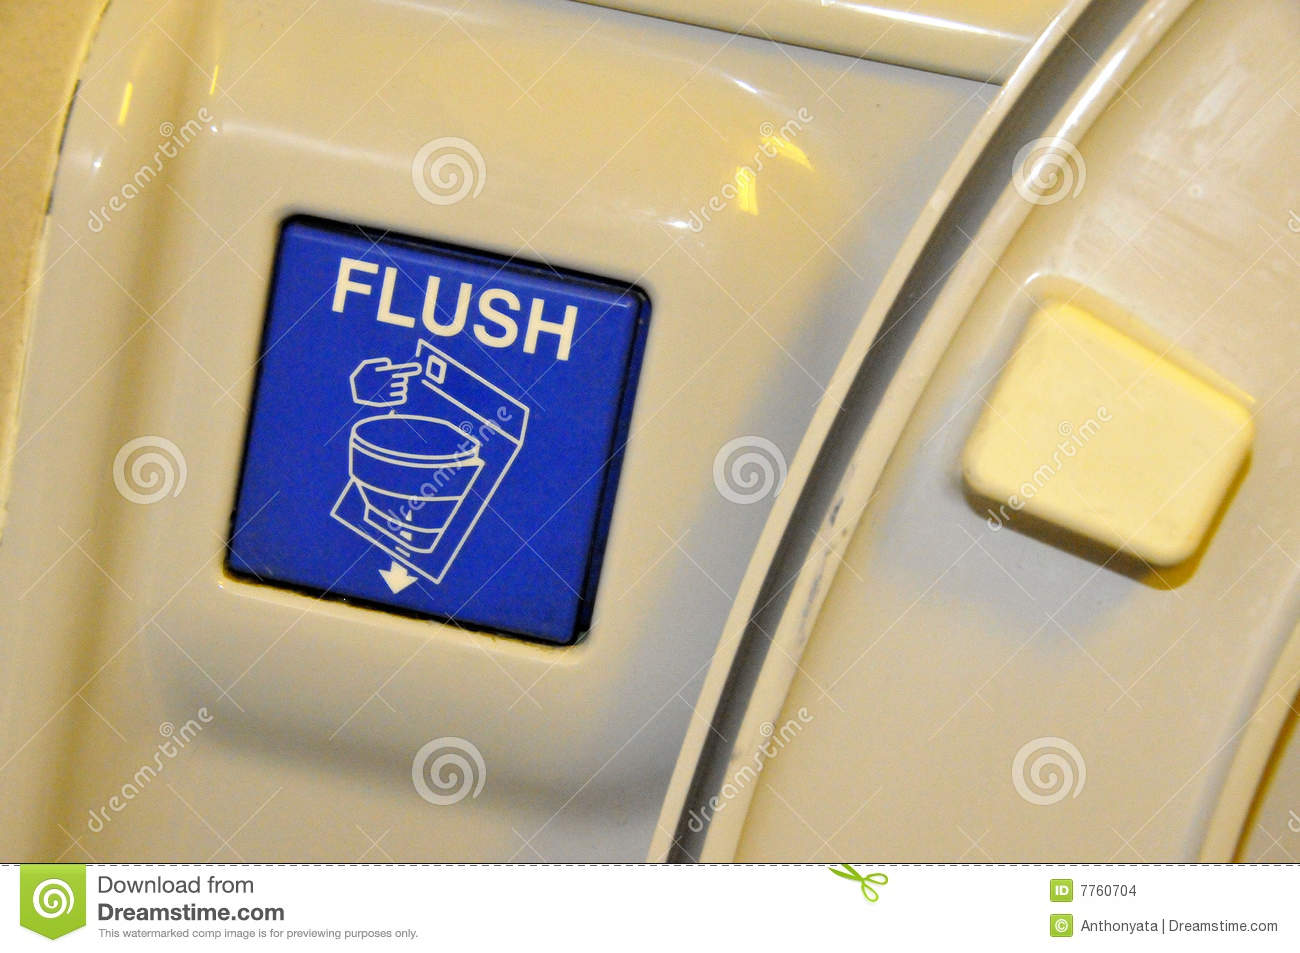 Airplane Toilet Flushing Sign Stock Photo